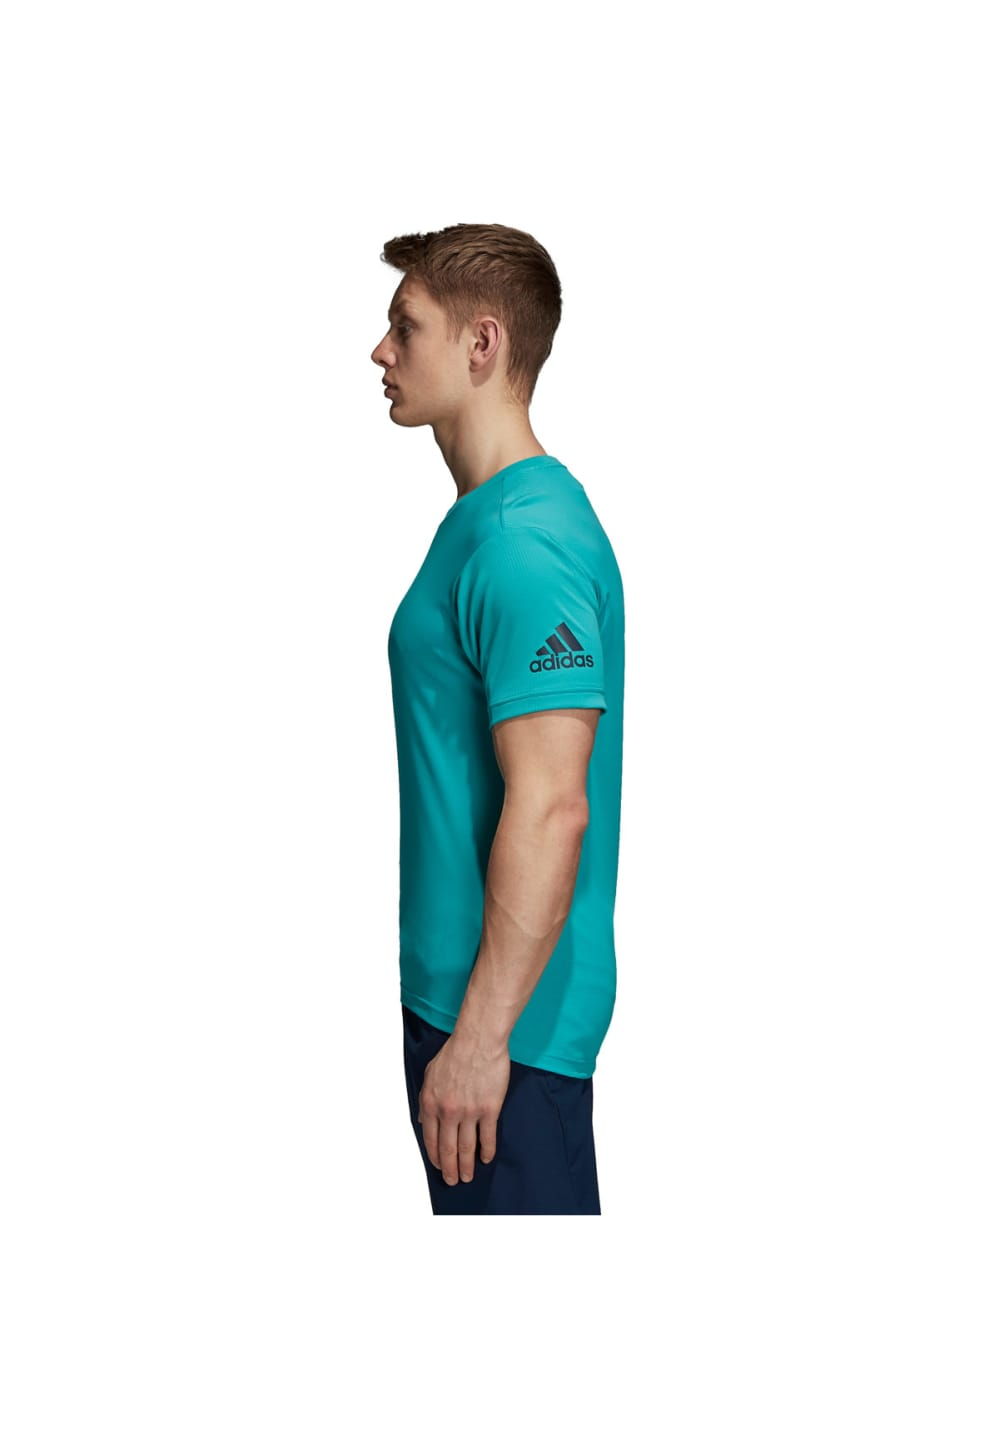 6726e115 adidas FreeLift Climachill Tee - Fitness tops for Men - Green | 21RUN